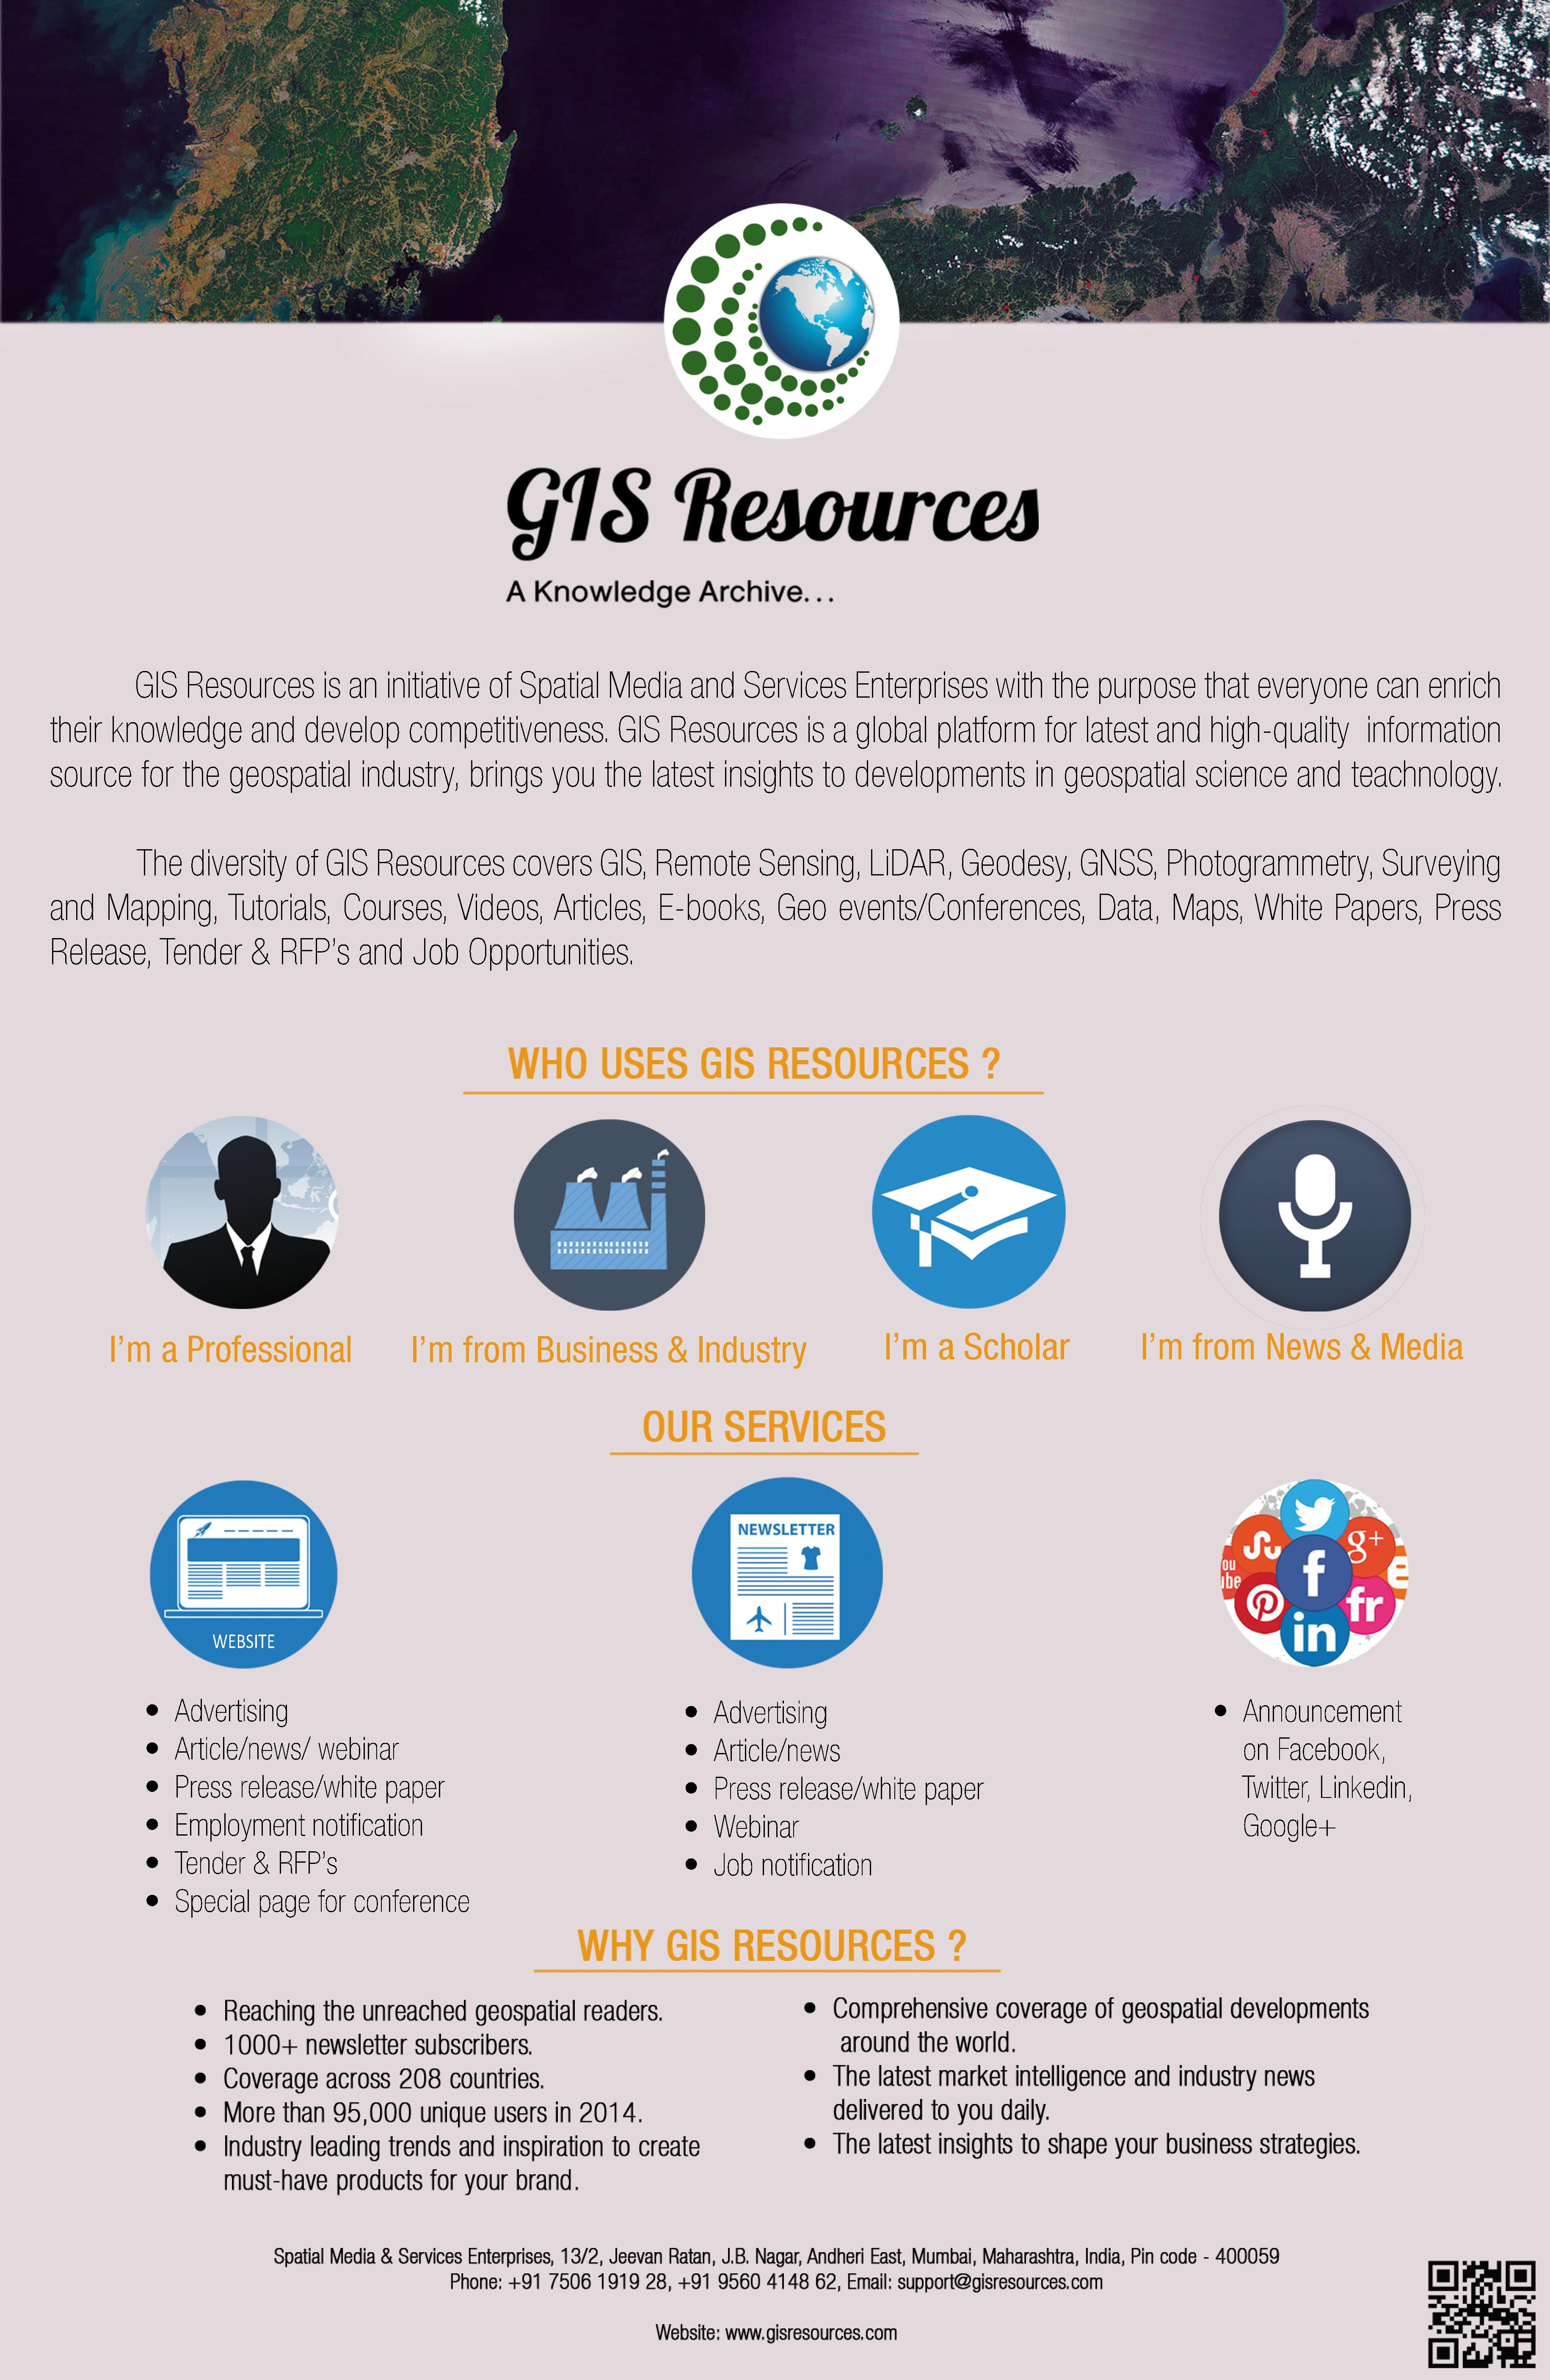 About GIS Resources